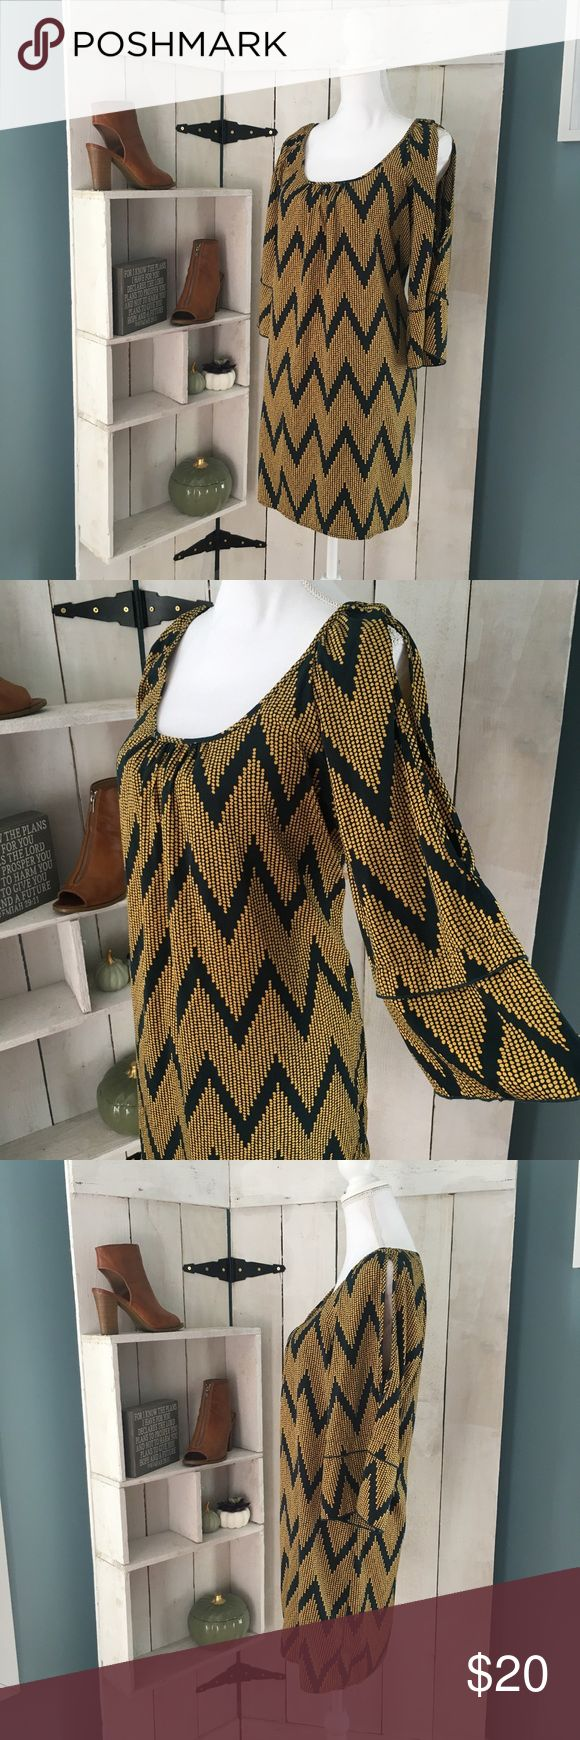 """GLAM split wide sleeve Aztec chevron print dress L GLAM split wide sleeve Aztec chevron print dress size L. Polyester material, scoop neck with rouching. 34"""" from shoulder to hem, 19.5"""" from pit to pit. Very comfy. Navy with golden polka dots comprising the print. GLAM Dresses"""